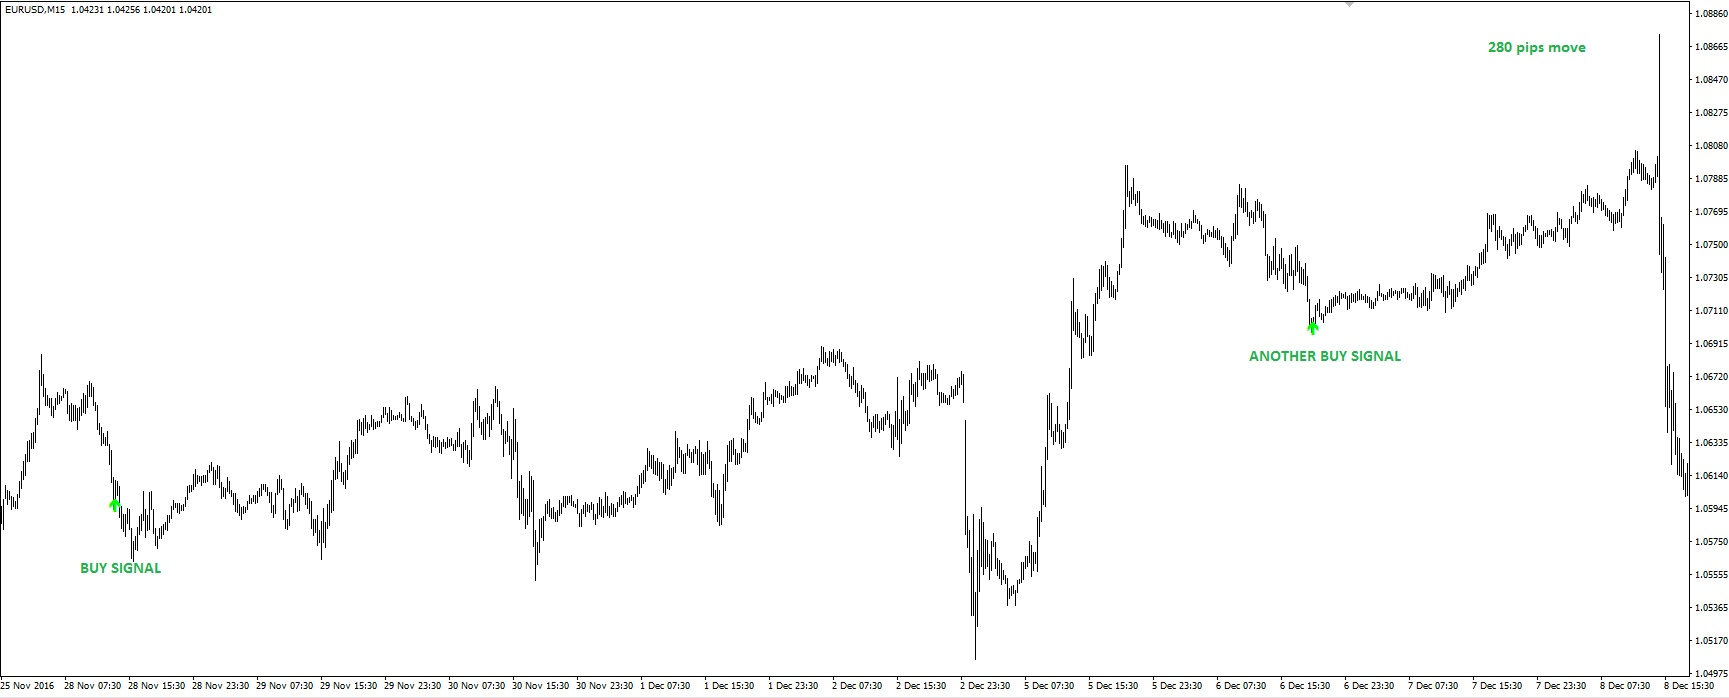 Forex holy grail golden eagle edition